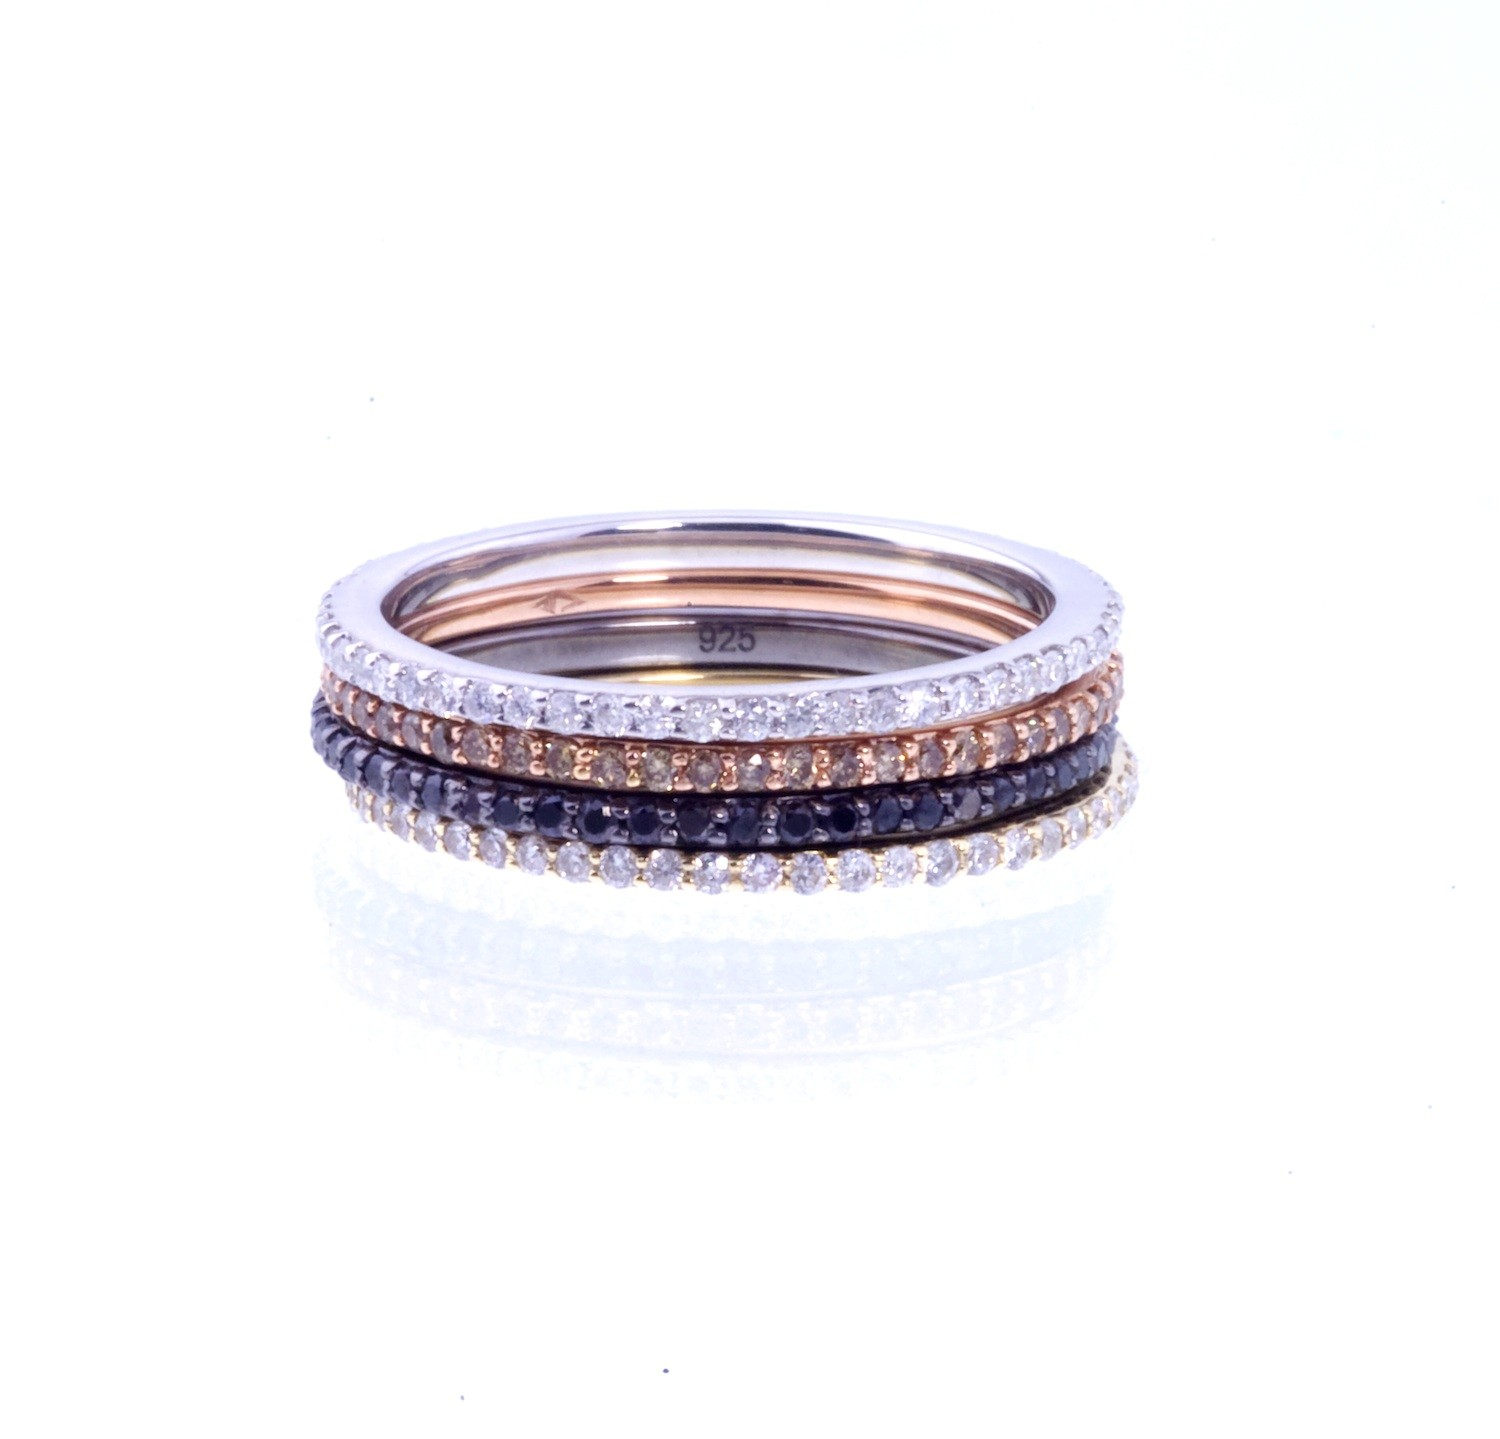 Simple leigh pave diamond ring, rose gold by alexa leigh